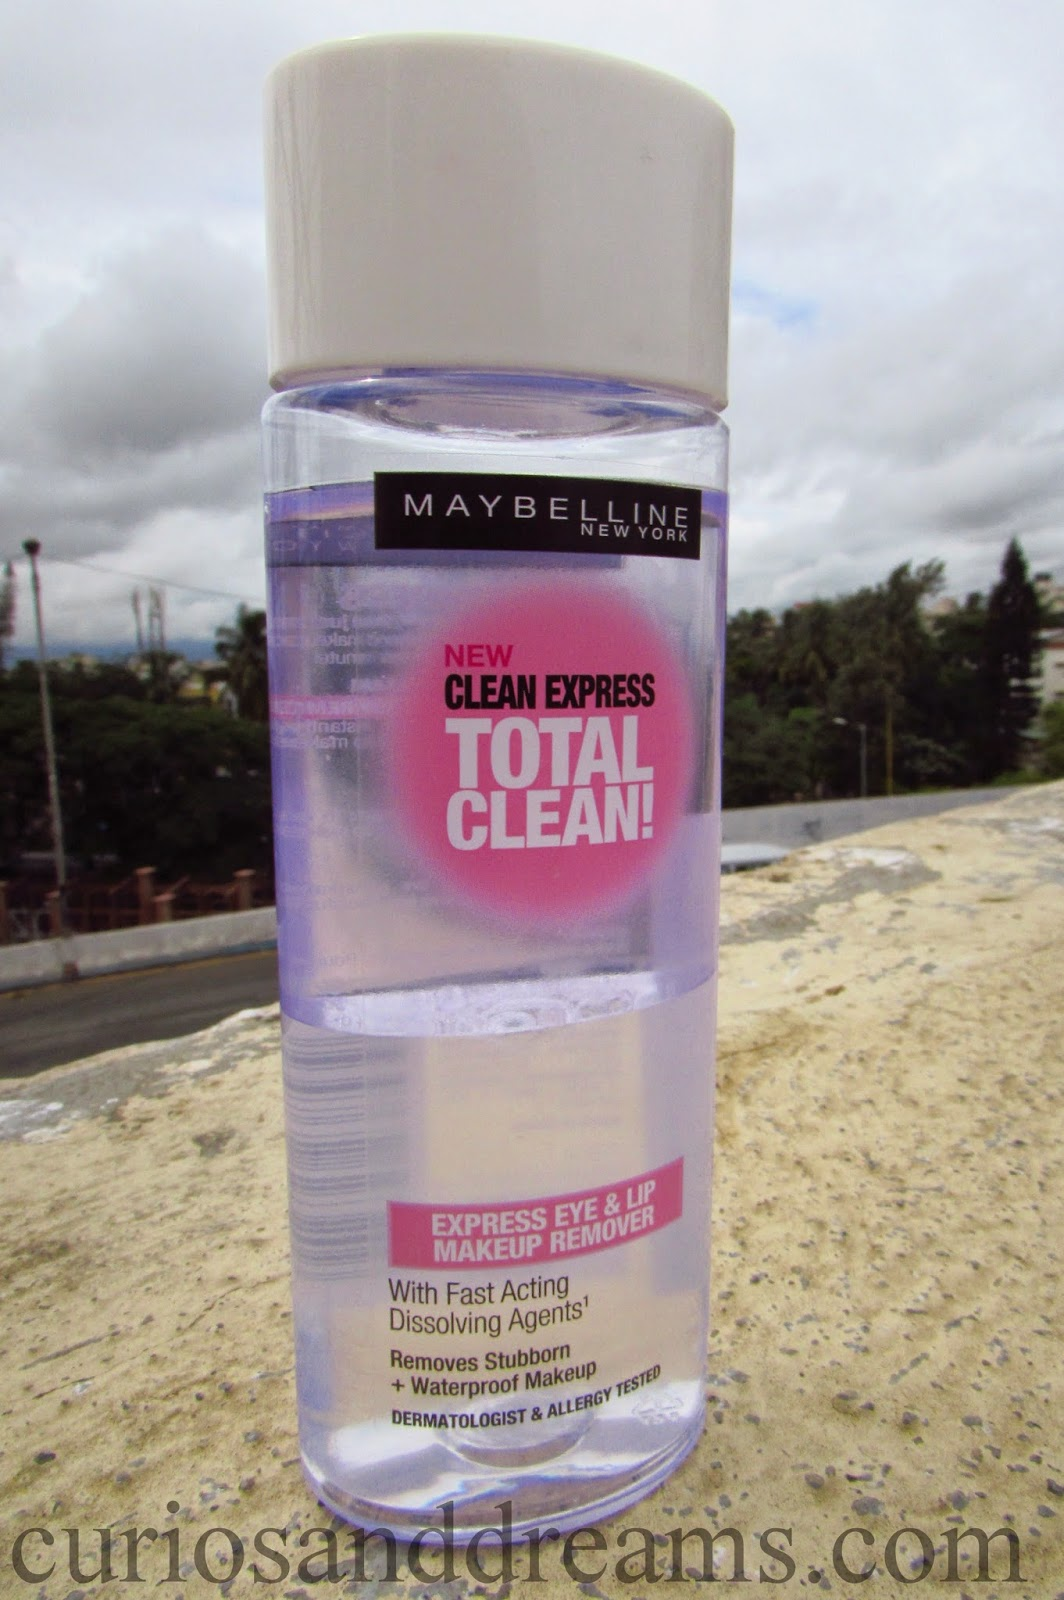 Maybelline Clean Express Total Clean Makeup Remover Review, Maybelline Total Clean Makeup Remover Review